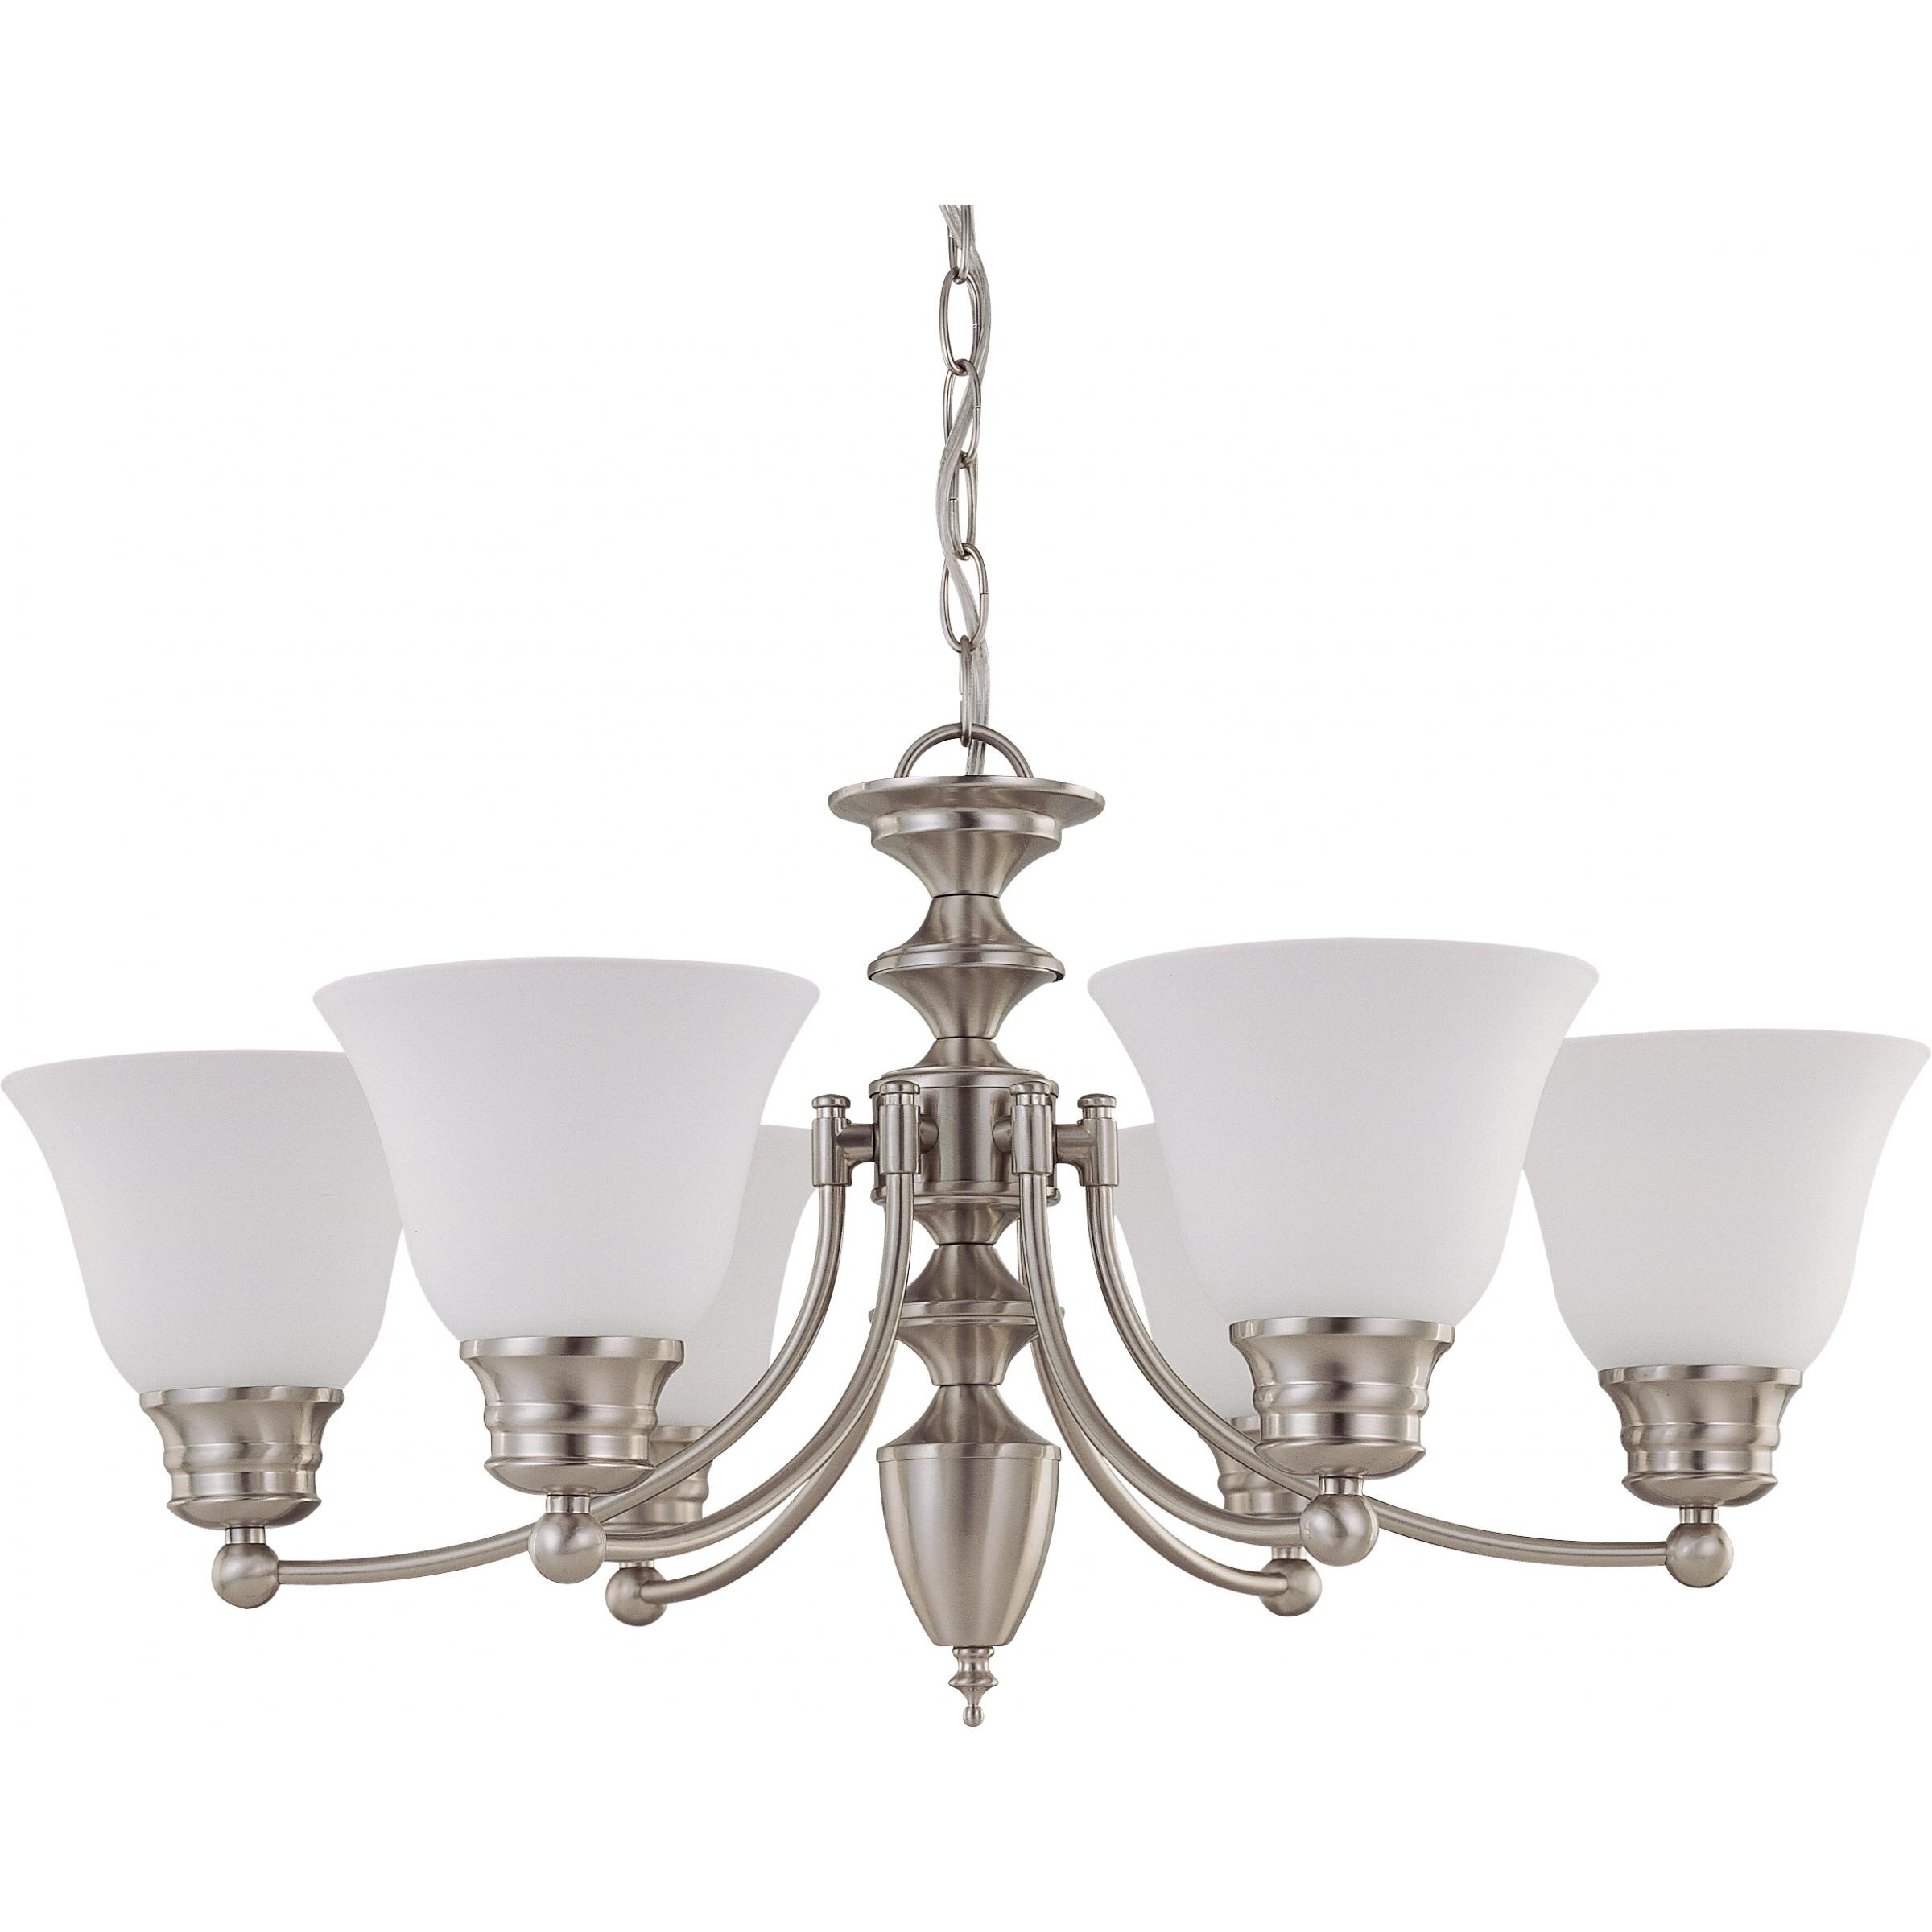 Charlton Home Poneto 6 Light Shaded Classic Traditional Chandelier Reviews Wayfair